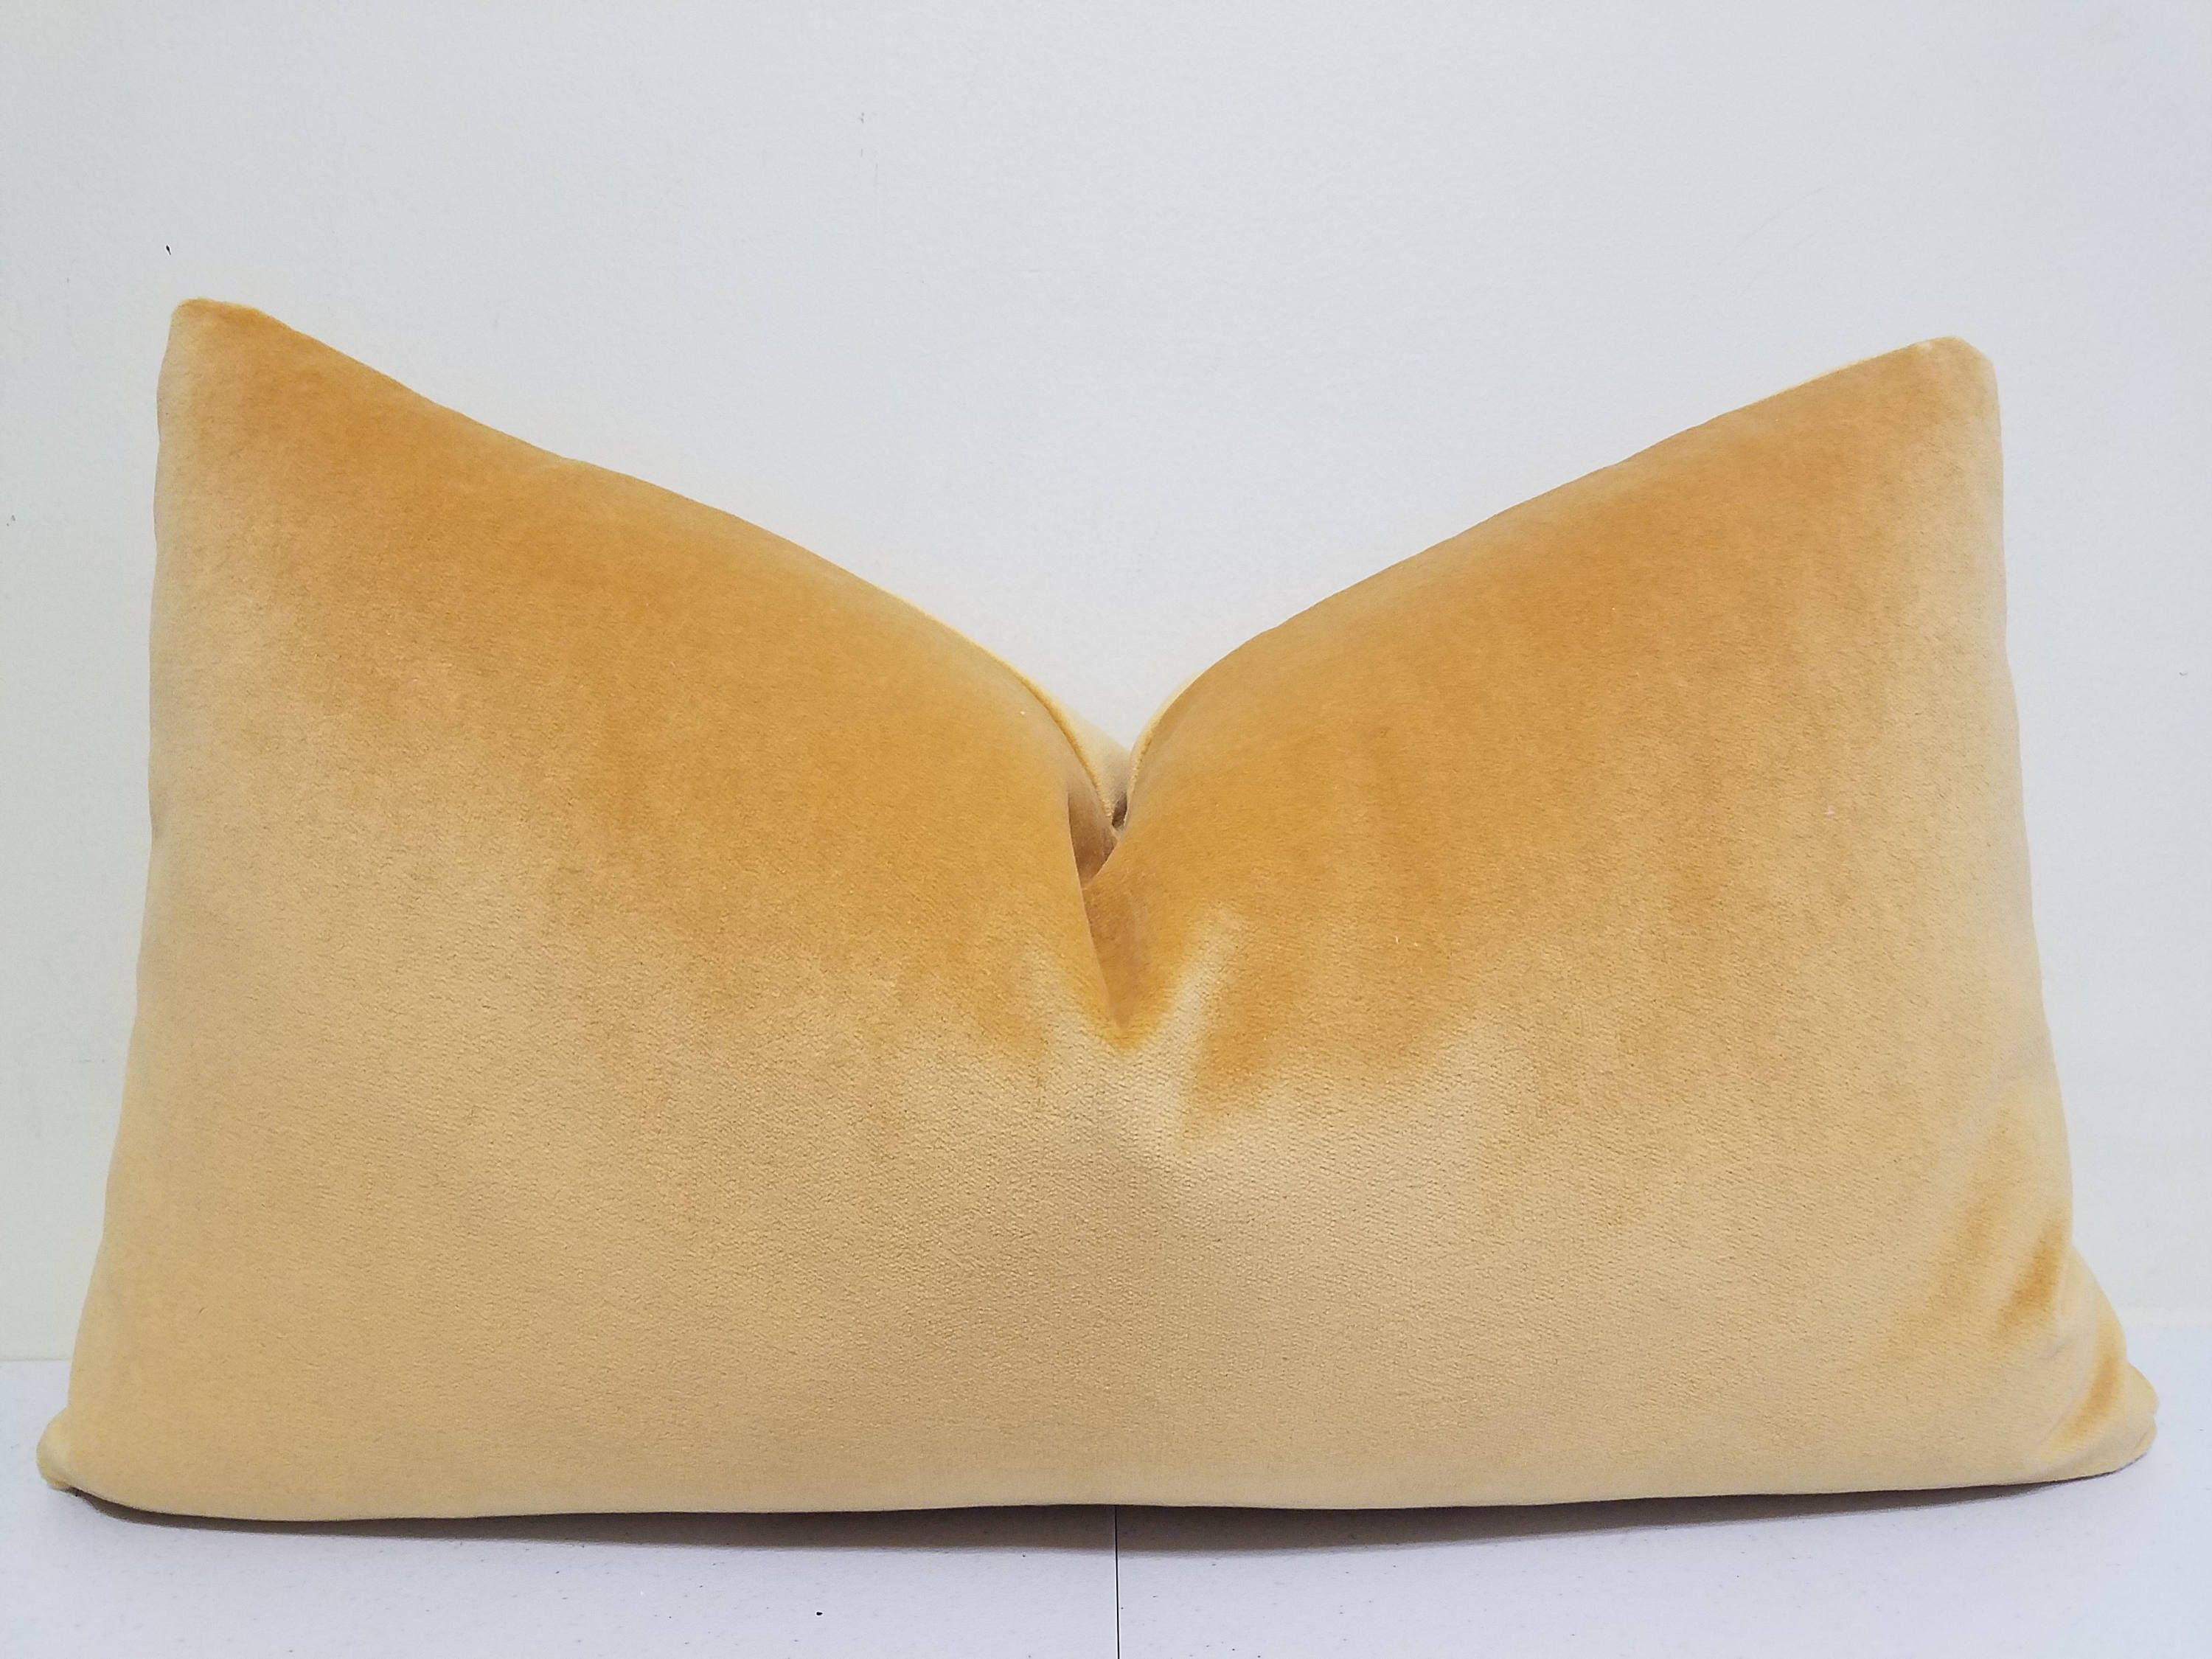 Etsy Yellow Throw Pillow : Gold Yellow Velvet Lumbar Pillow Cover -velvet Lumbar - Decorative throw pillow - Gold Velvet ...